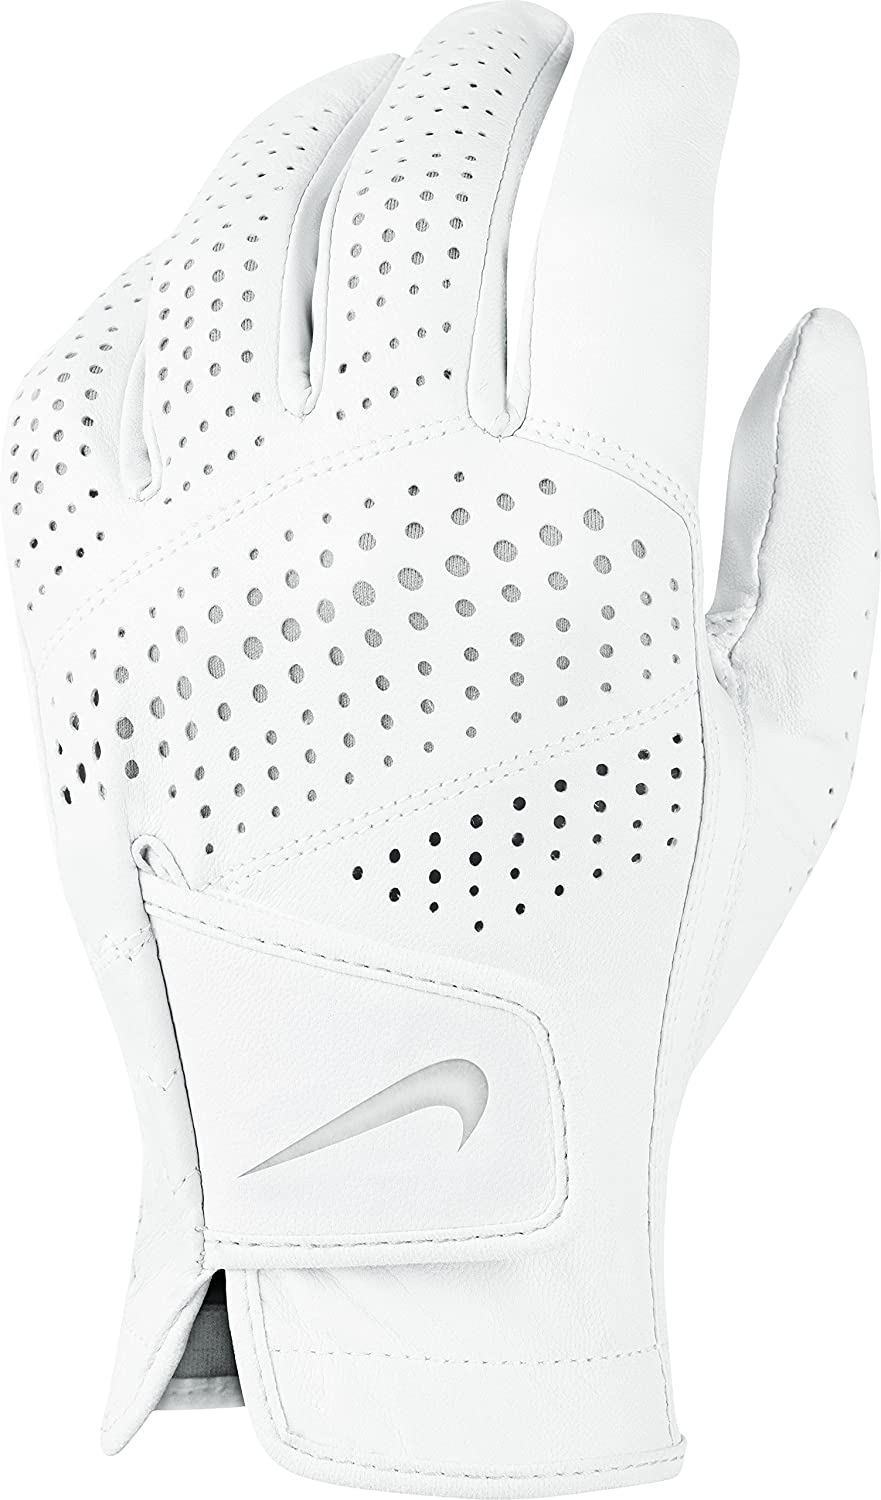 Nike Tour Classic II Golf Glove 2016 Ladies Regular White/Grey/Silve Fit to Left Hand Medium/large